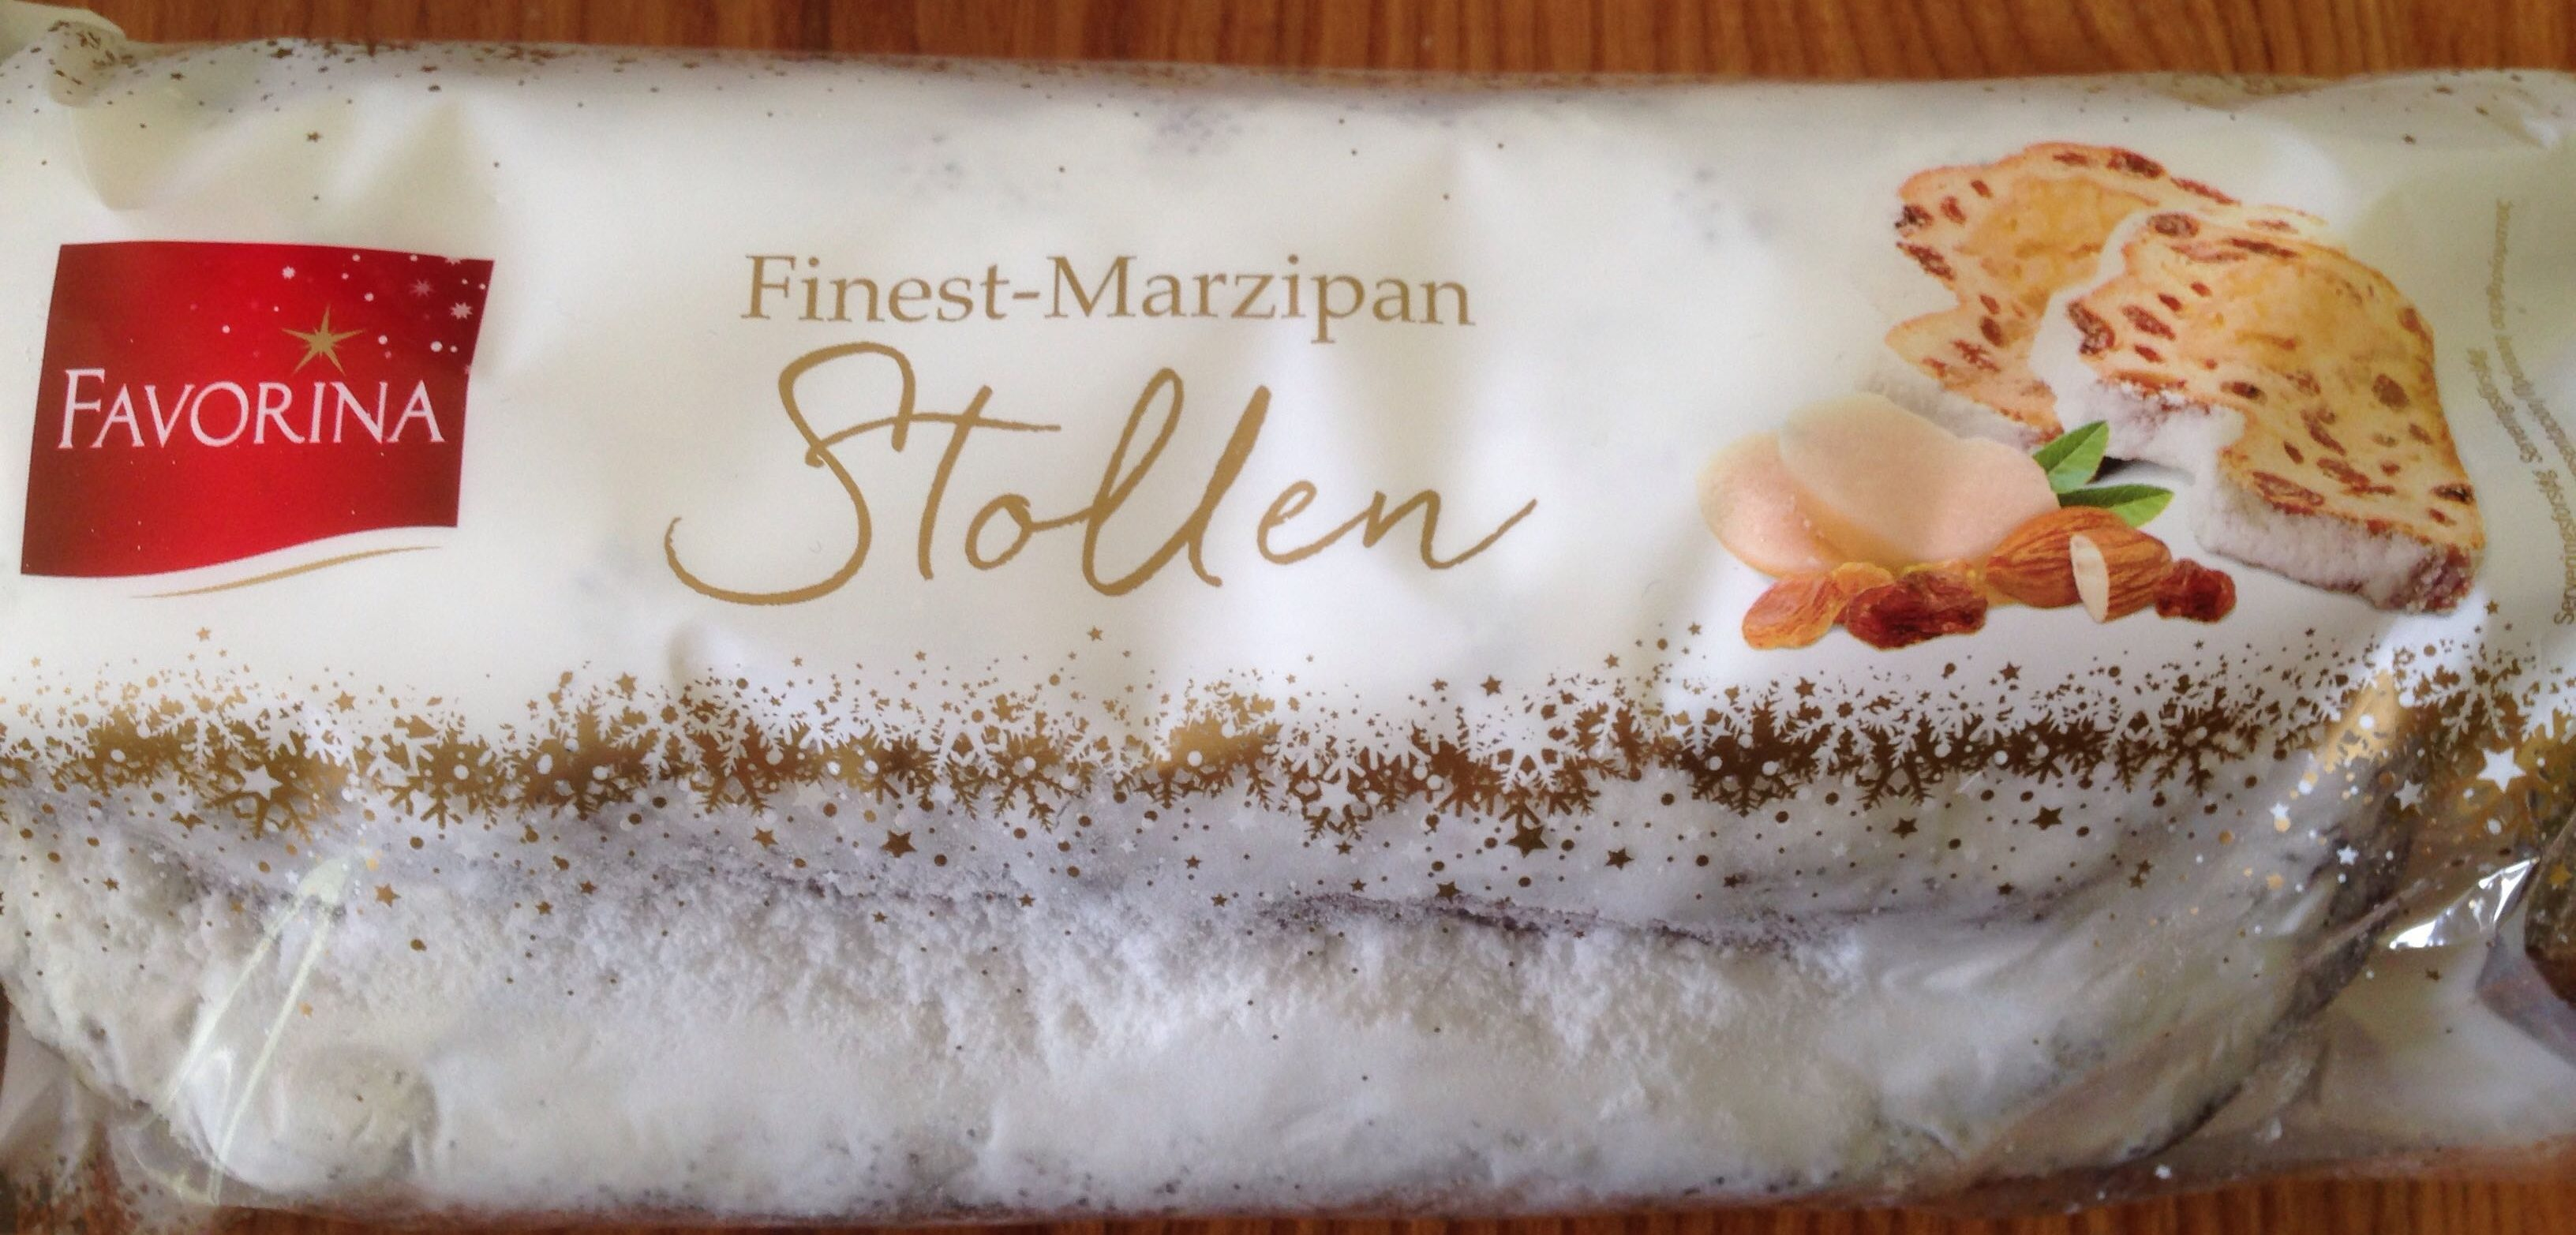 Stollen - Finest Marzipan - Product